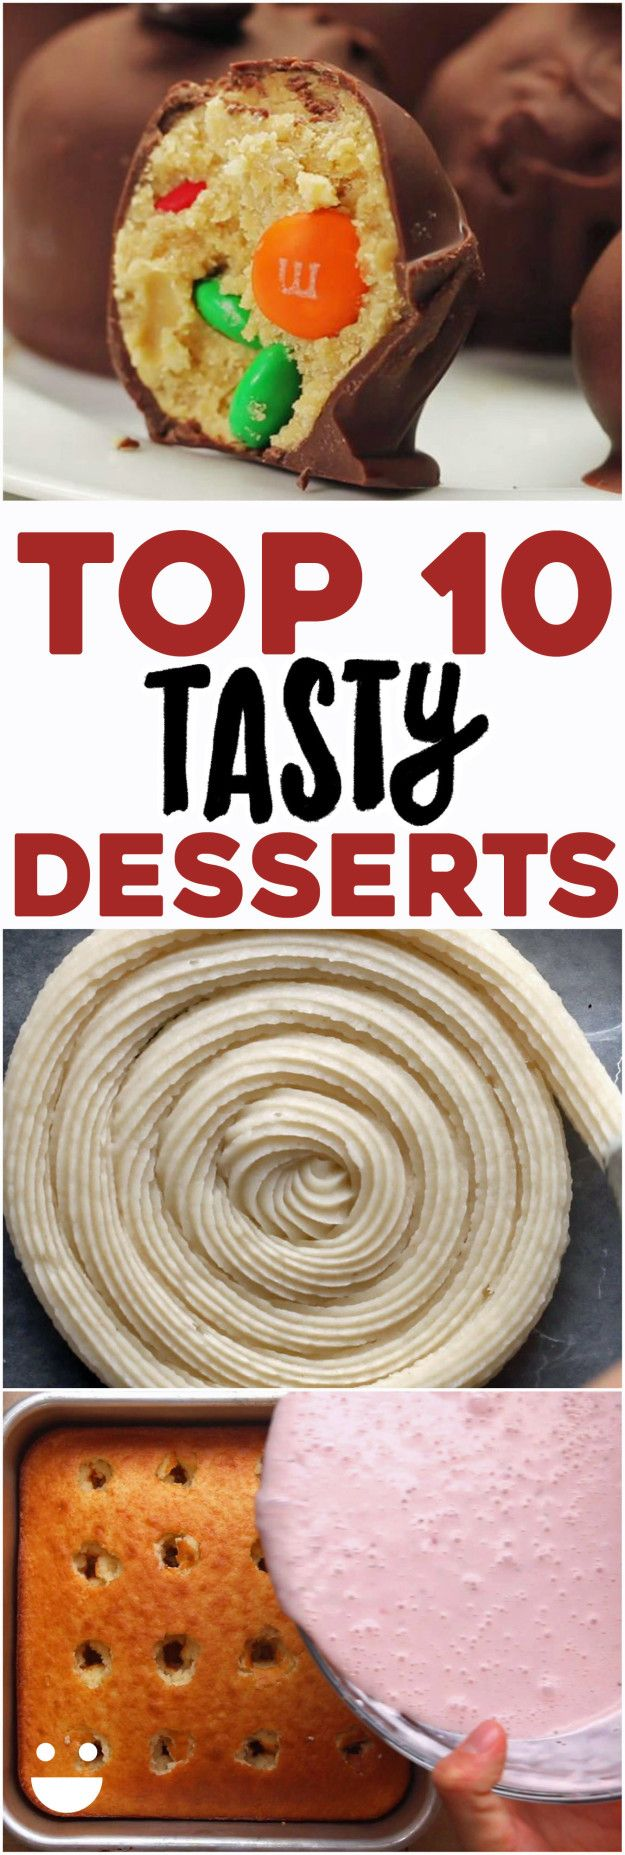 Top 10 Tasty Desserts | Here Are 10 Dessert Recipes That You Need To Make